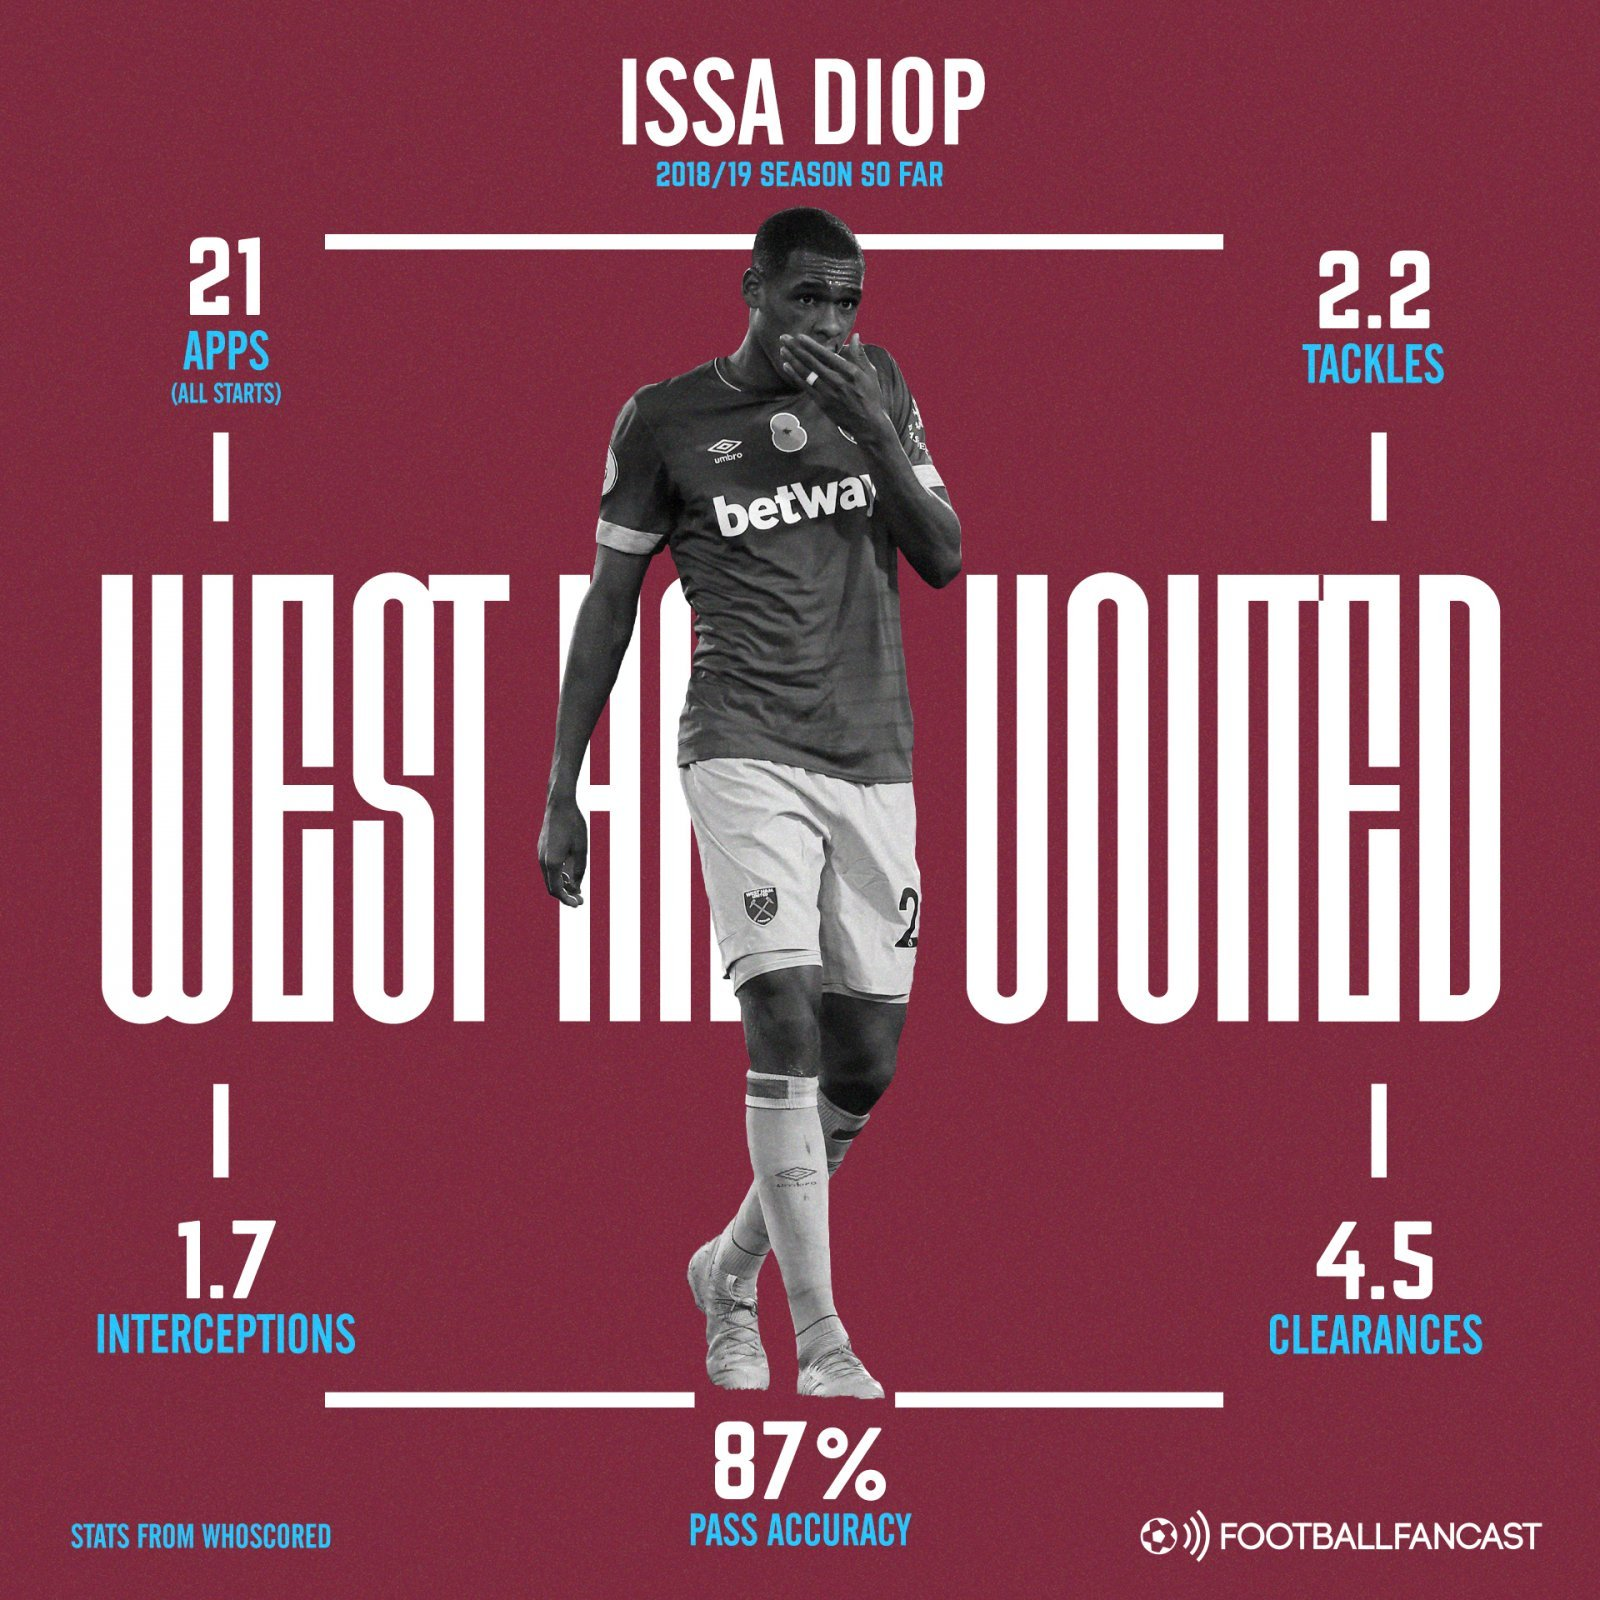 West Ham United centre back Issa Diops 2018 19 season stats so far - One standout statistic proves Pellegrini signing was an absolute bargain - opinion